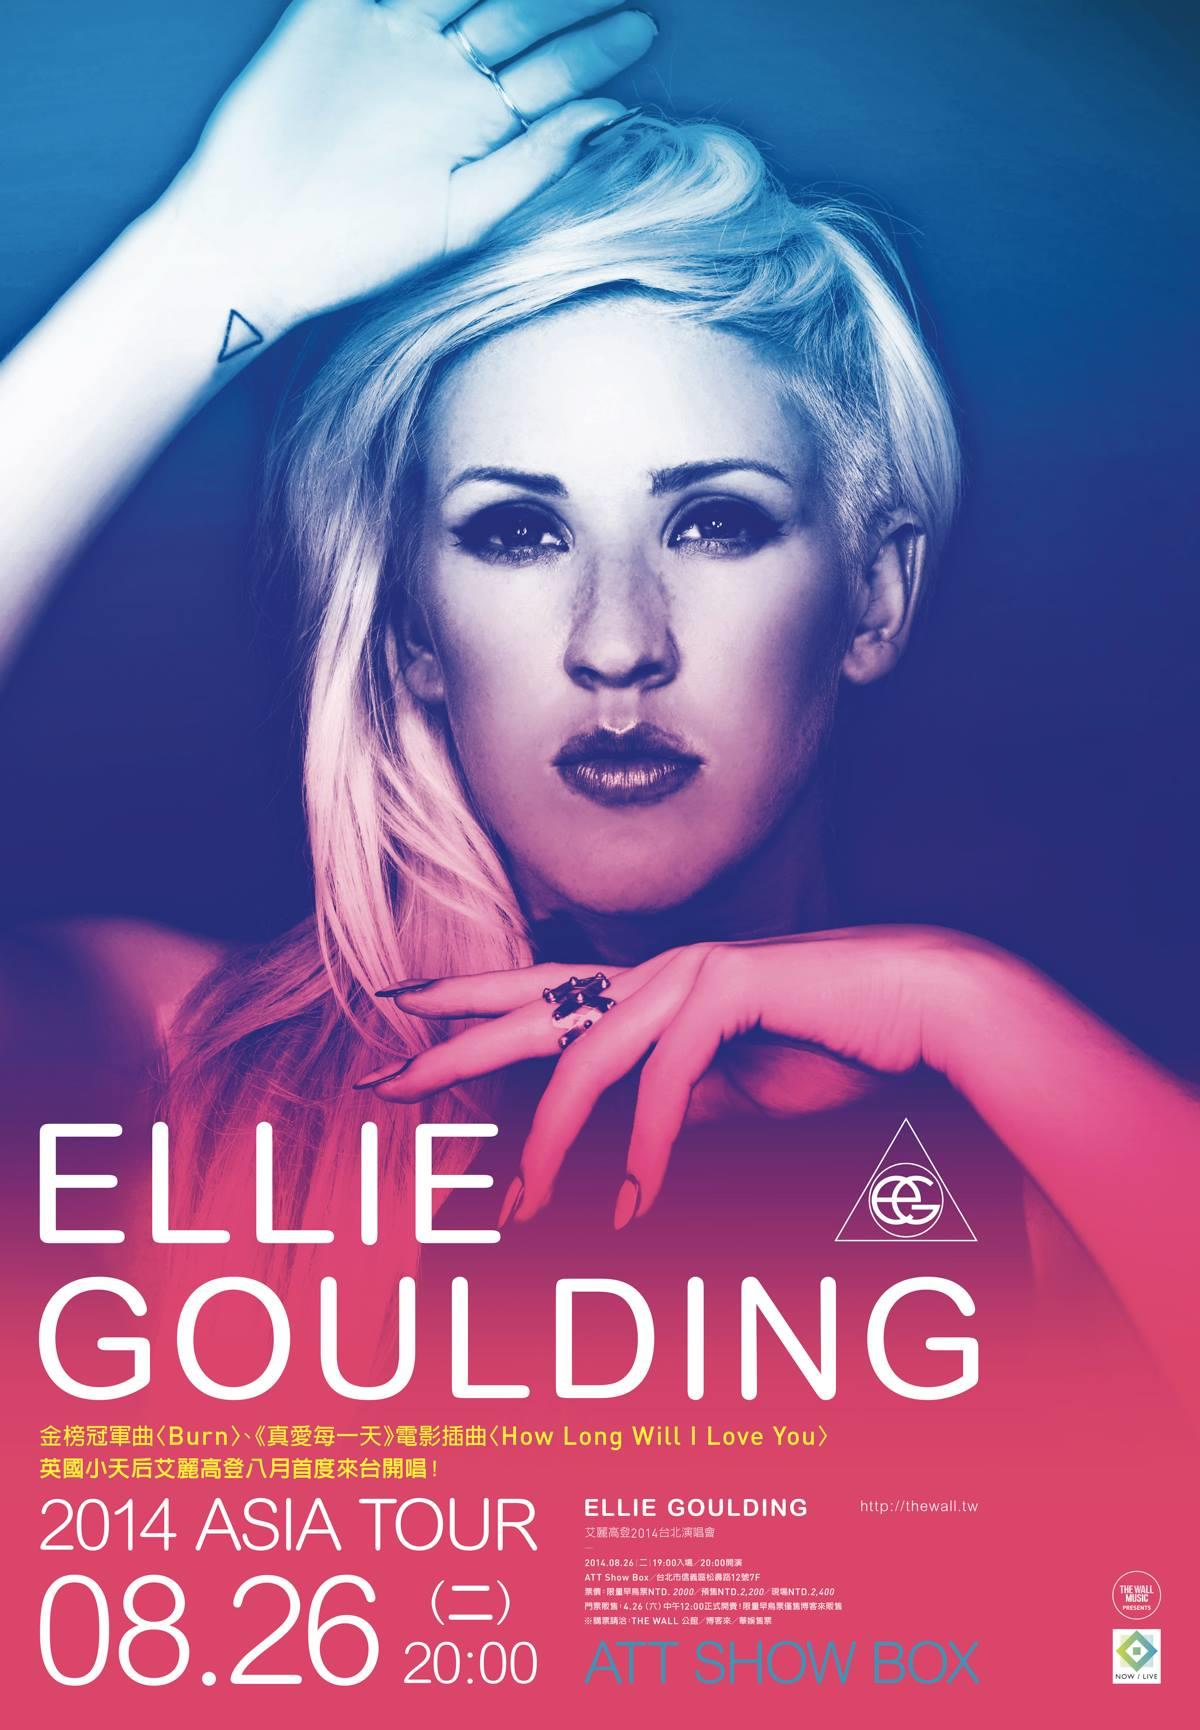 Ellie Goulding(THE WALL臉書)